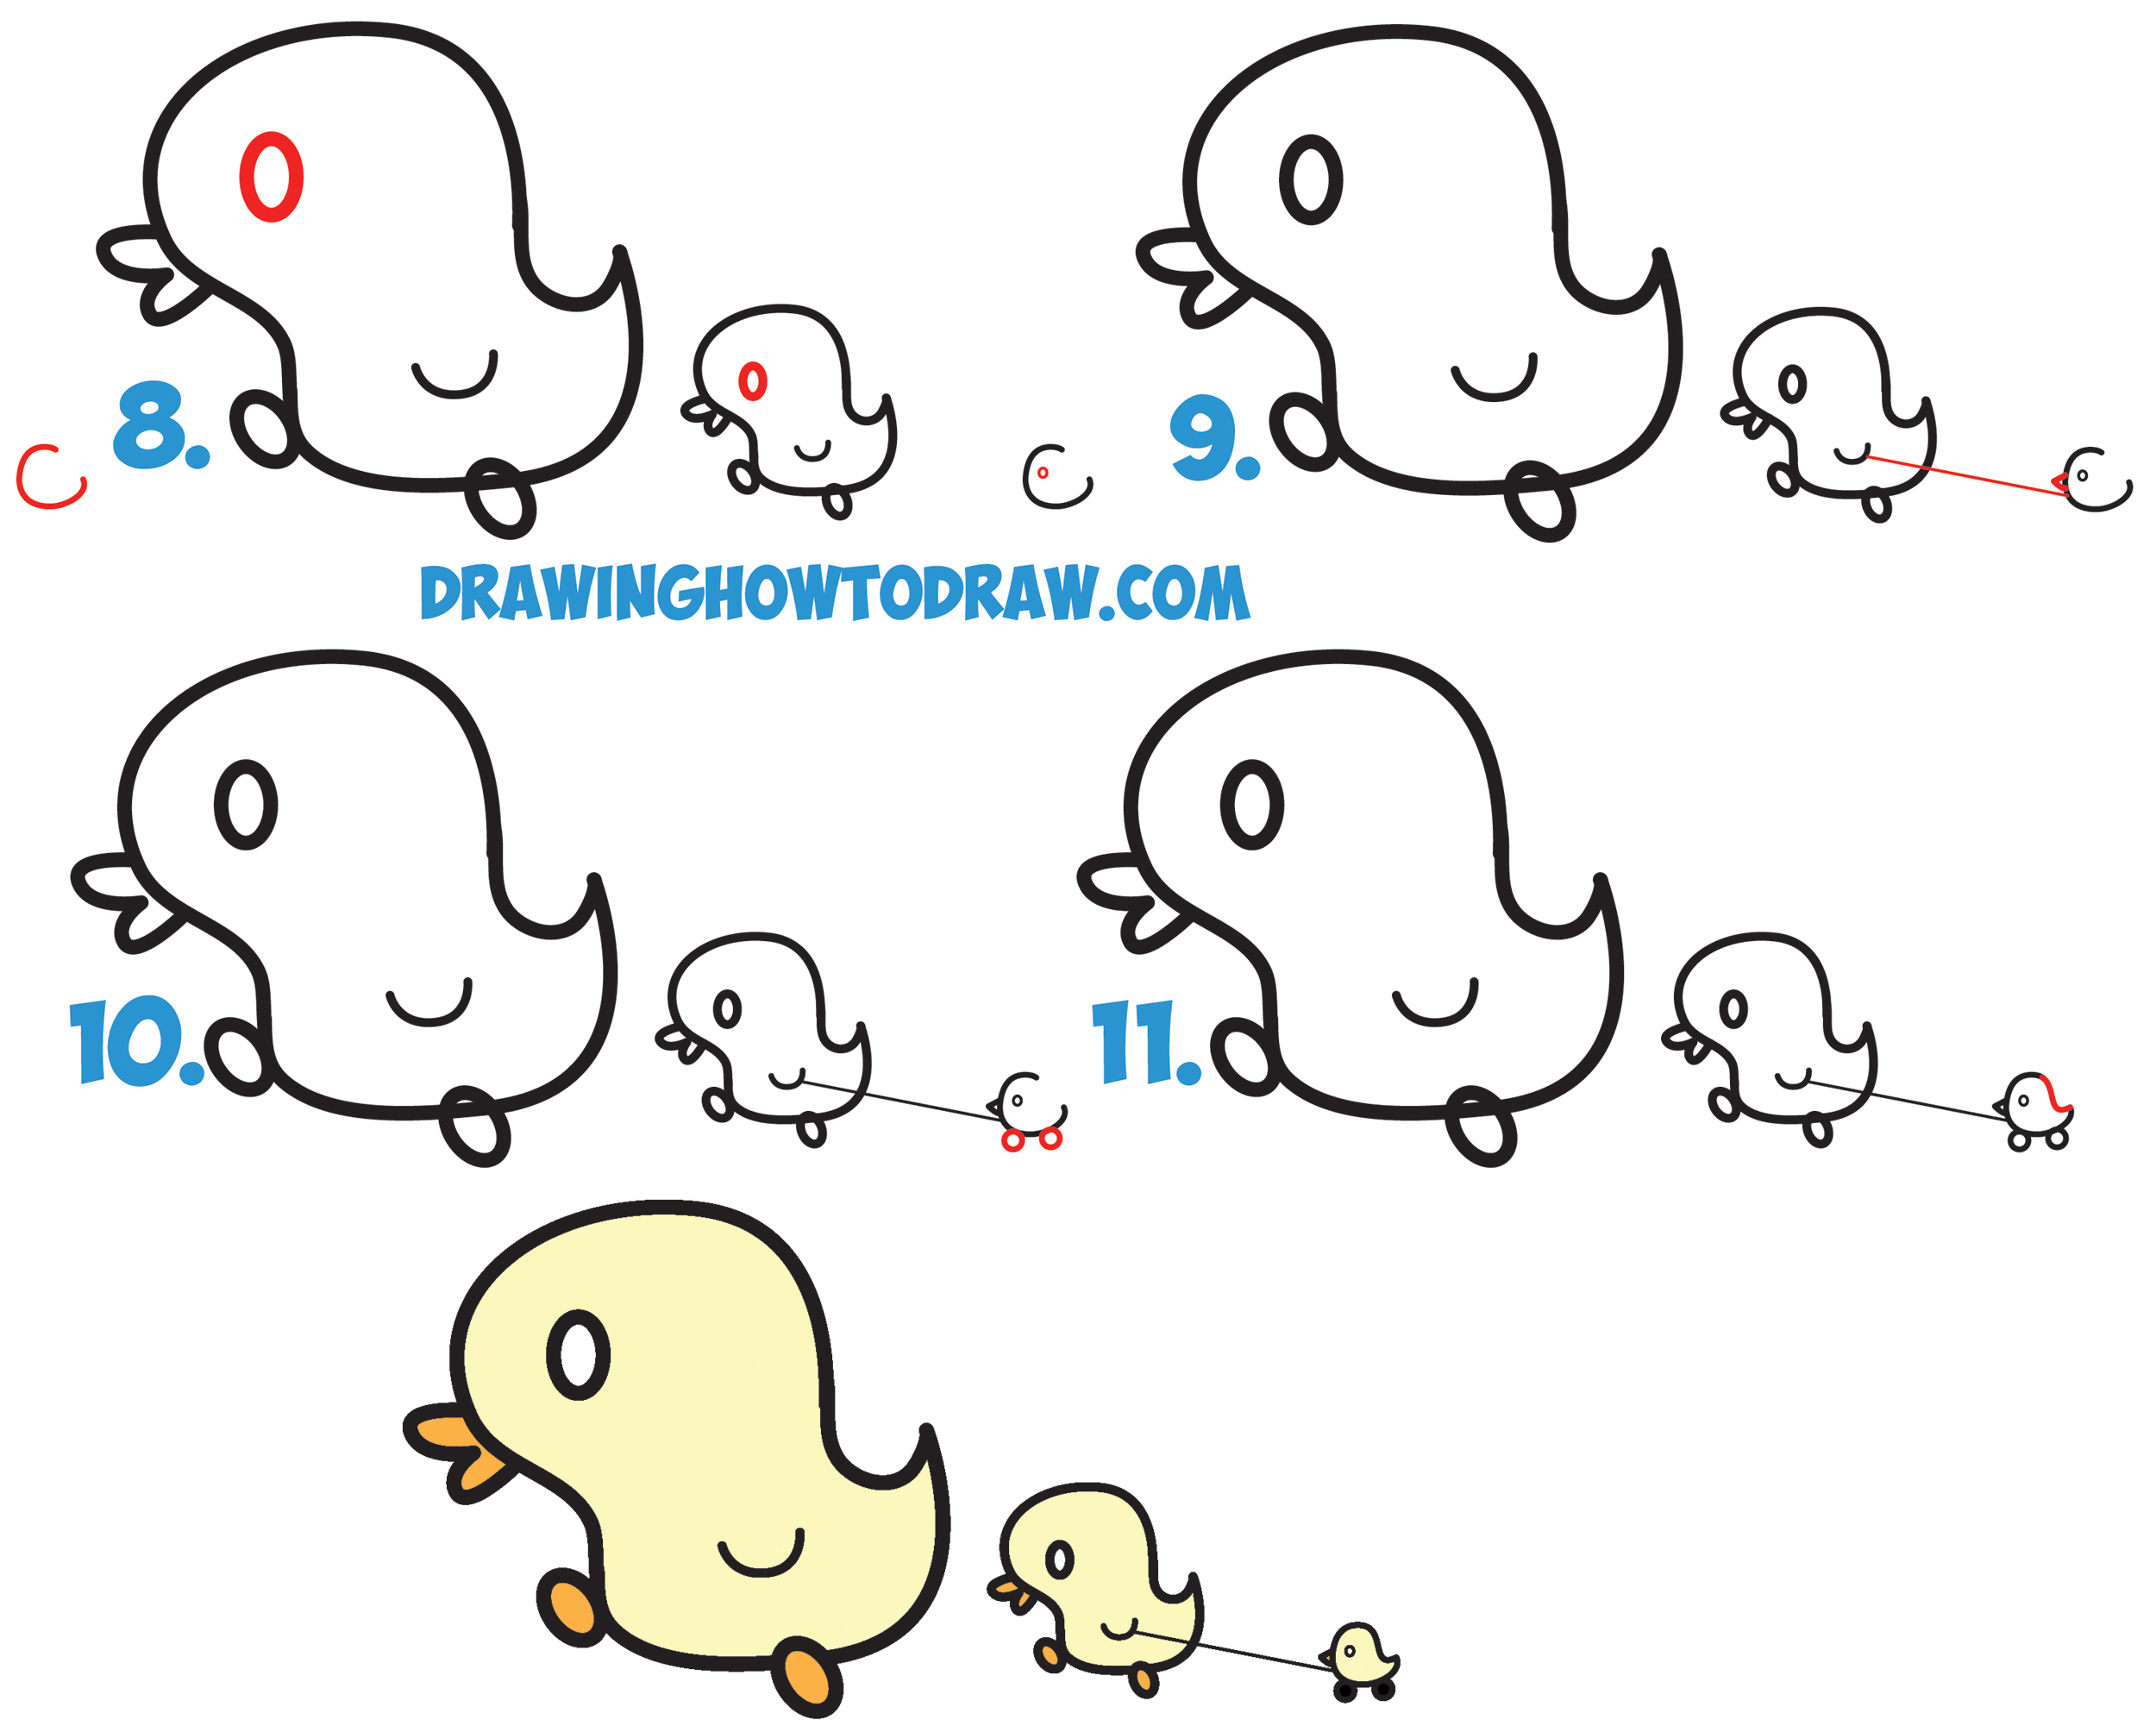 Learn How To Draw Cute Kawaii Baby Ducks Cartoon Ducklings In Simple Steps Drawing Lesson